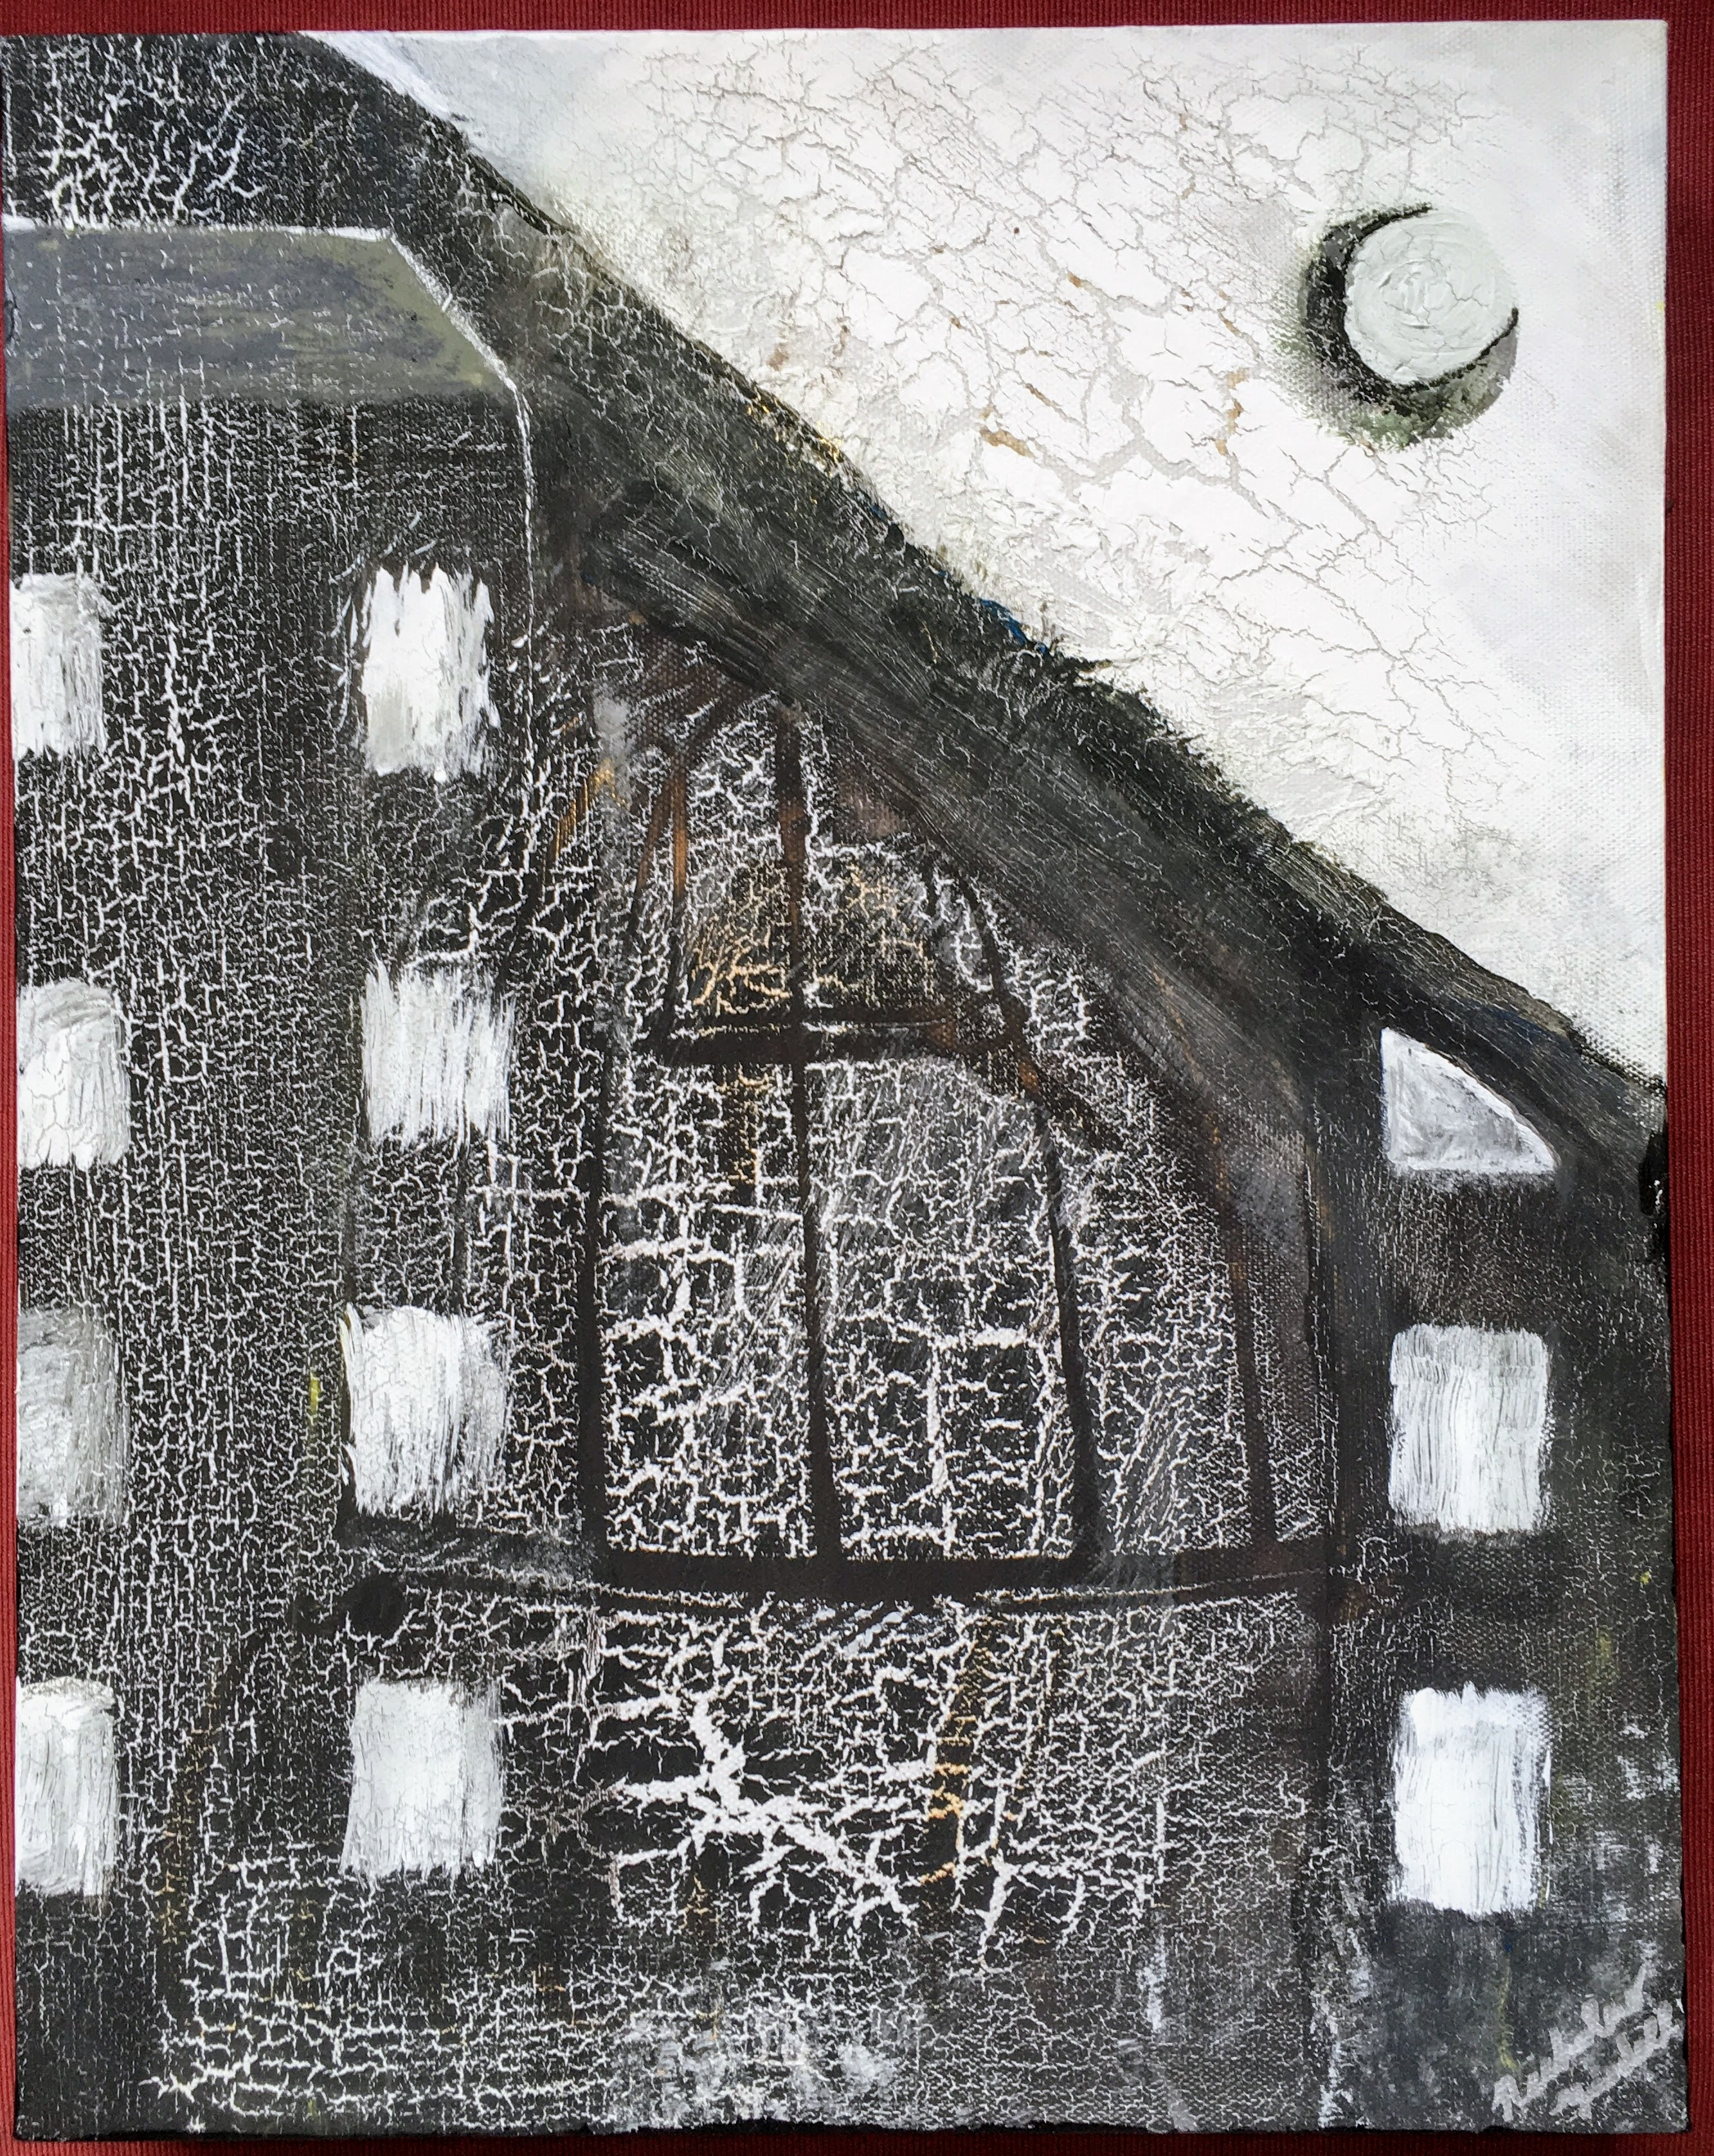 Furrowed Nocturne; 2015; acrylic